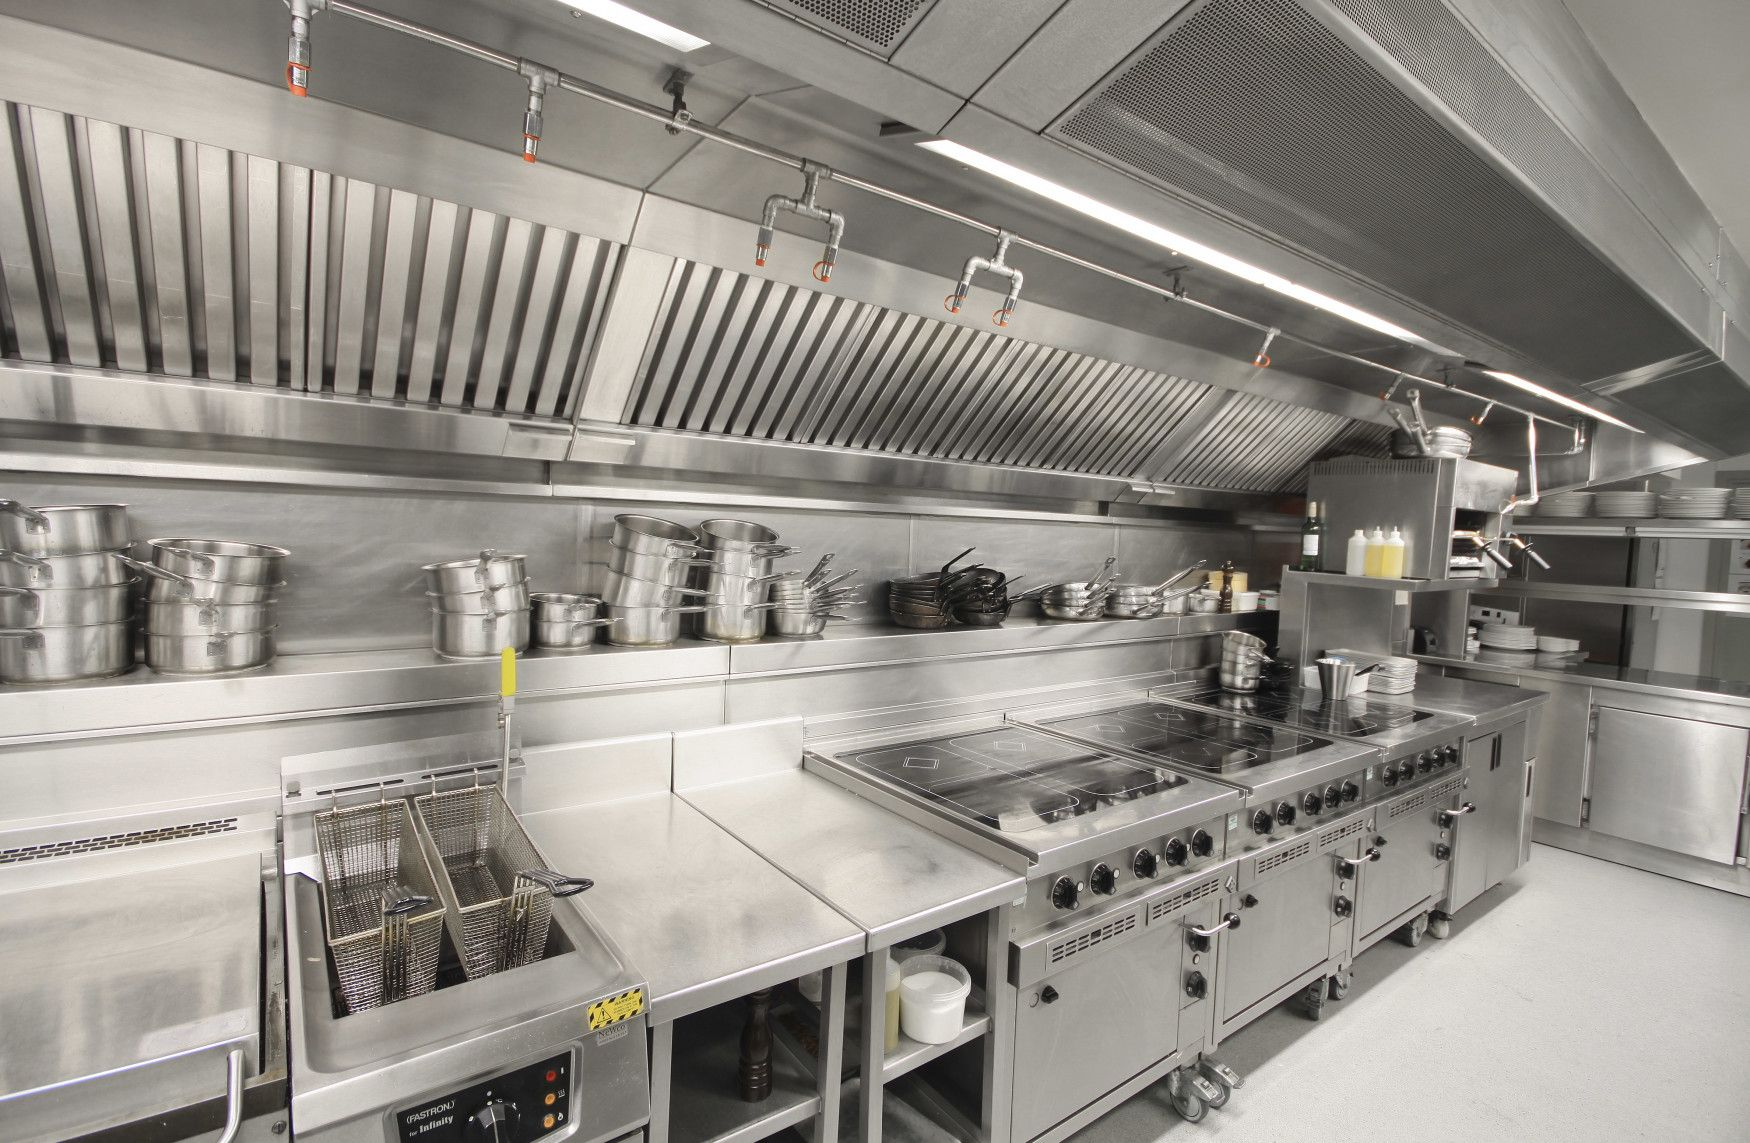 Commercial Exhaust And Hood Cleaning In New York City Restaurant Kitchen Design Restaurant Kitchen Equipment Commercial Kitchen Design